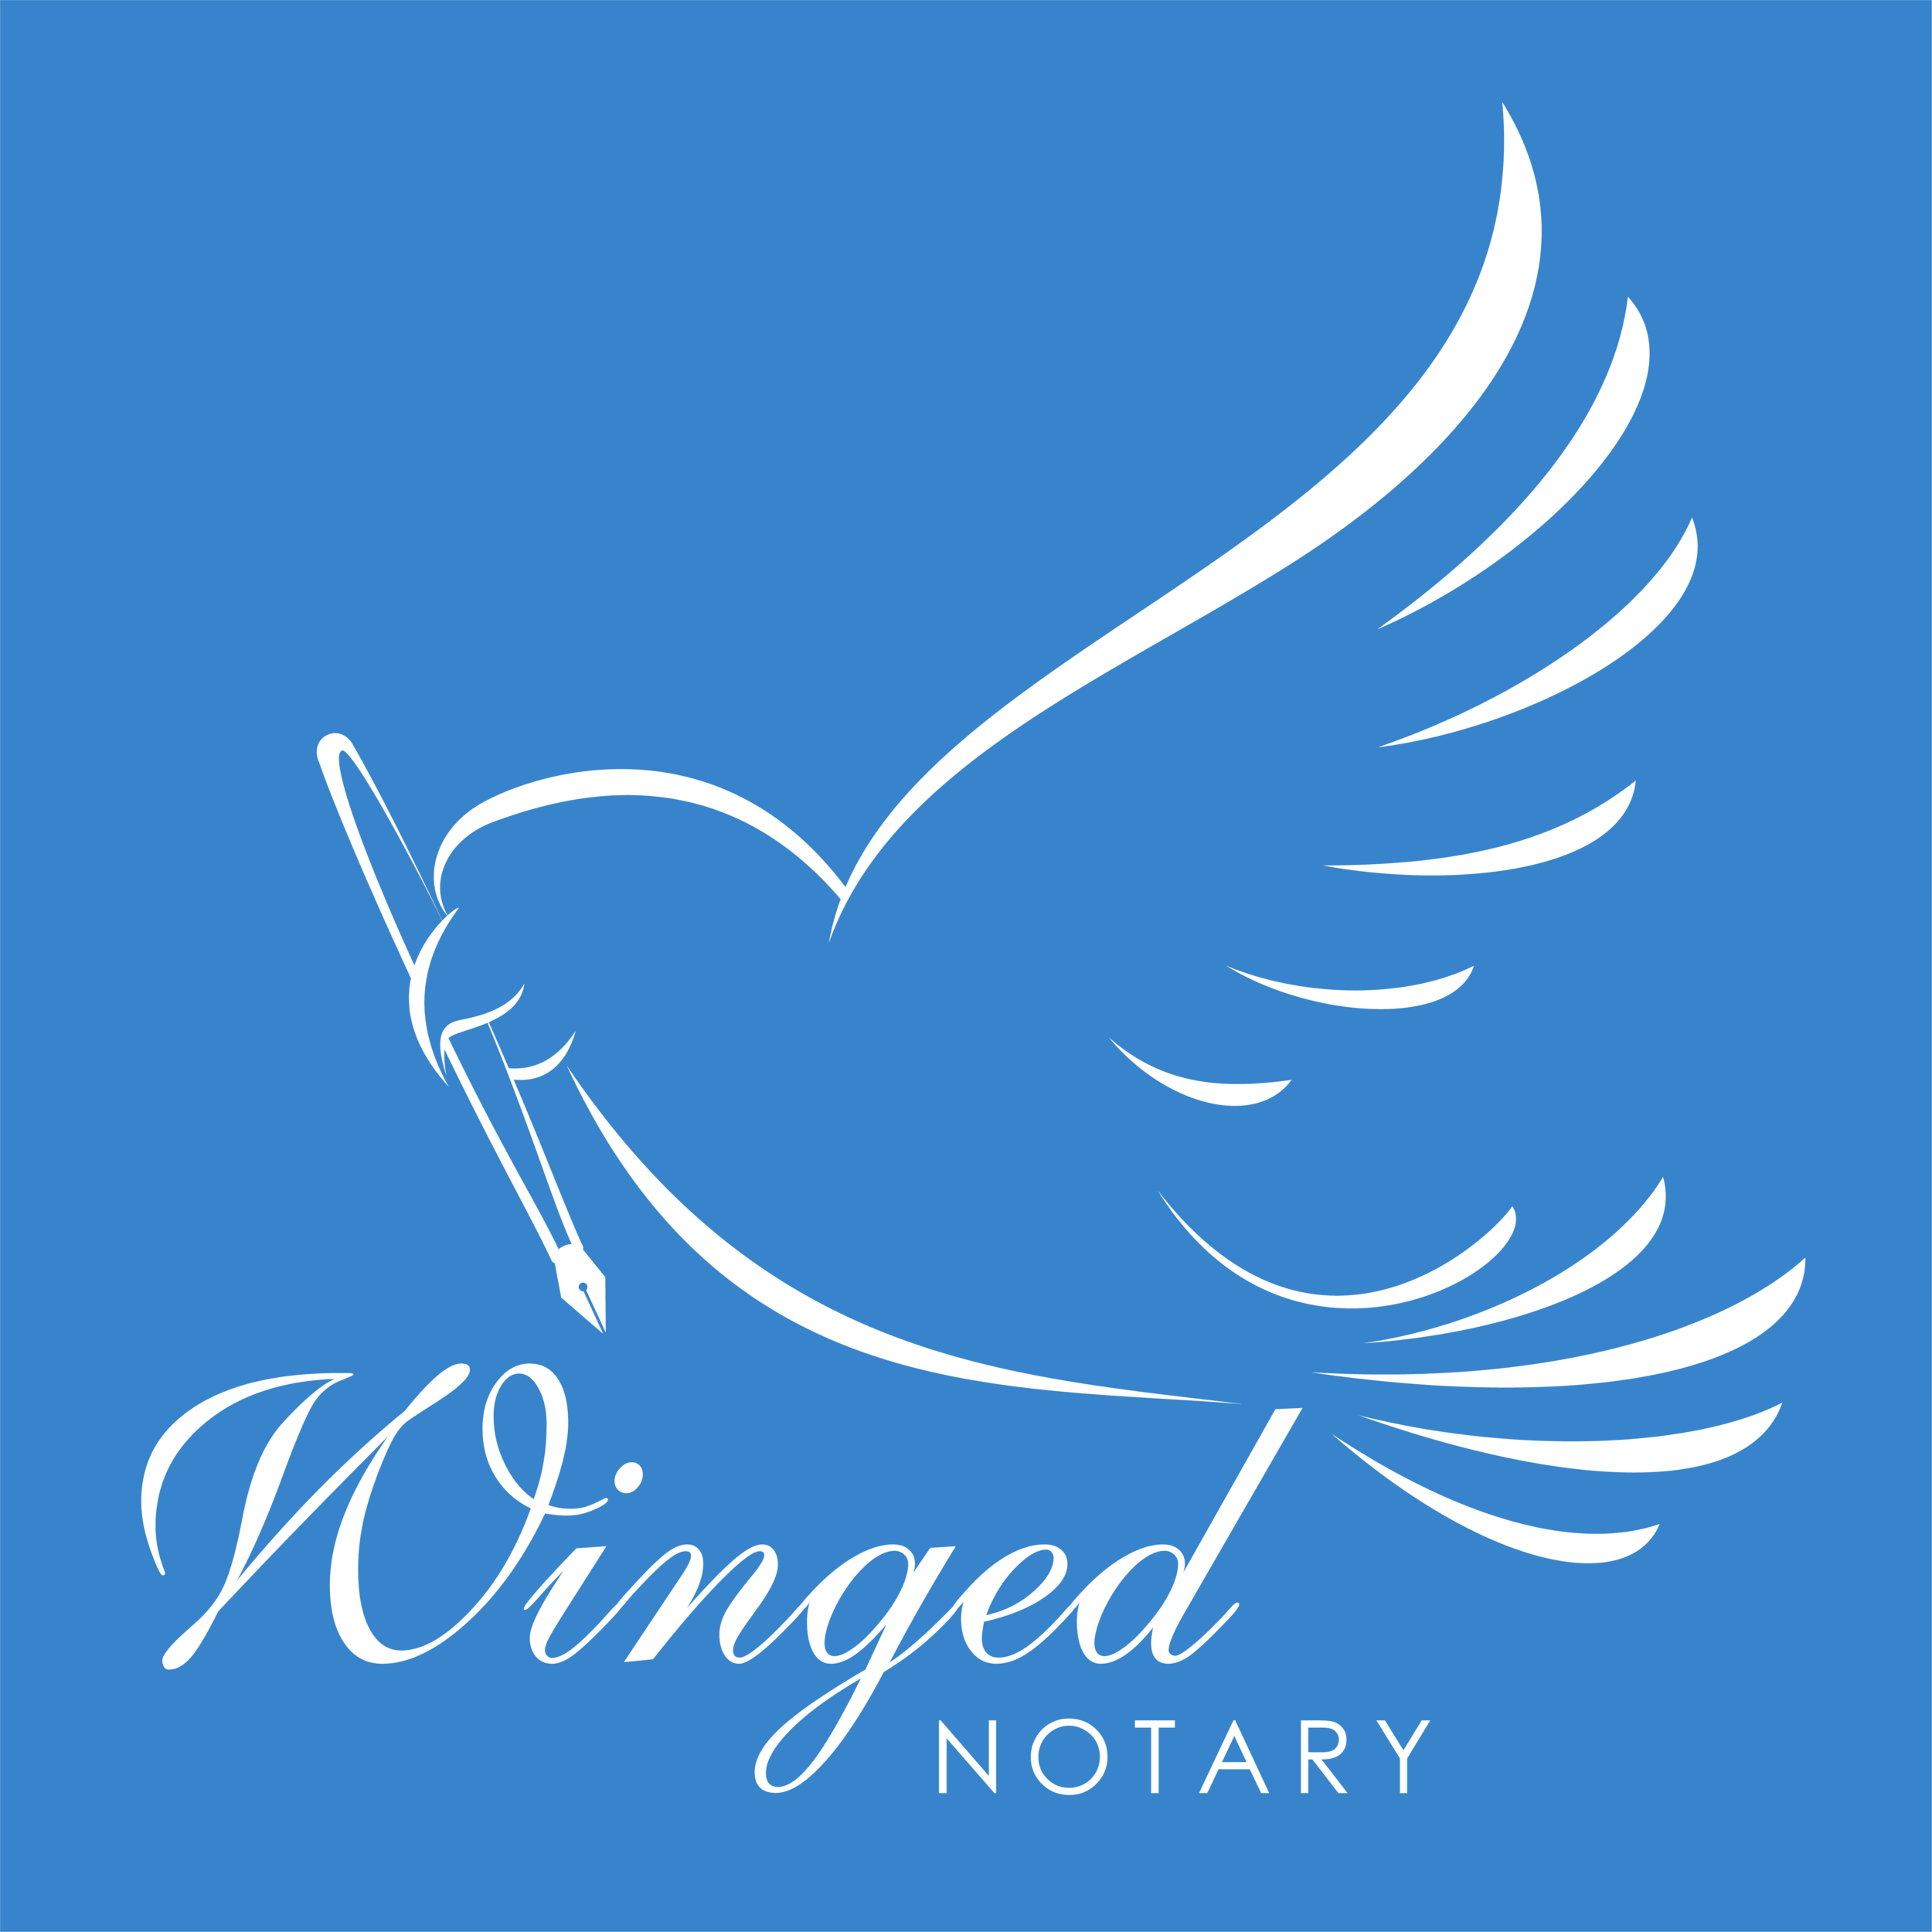 Winged-Notary-FINAL_Inverse (White on Blue).png